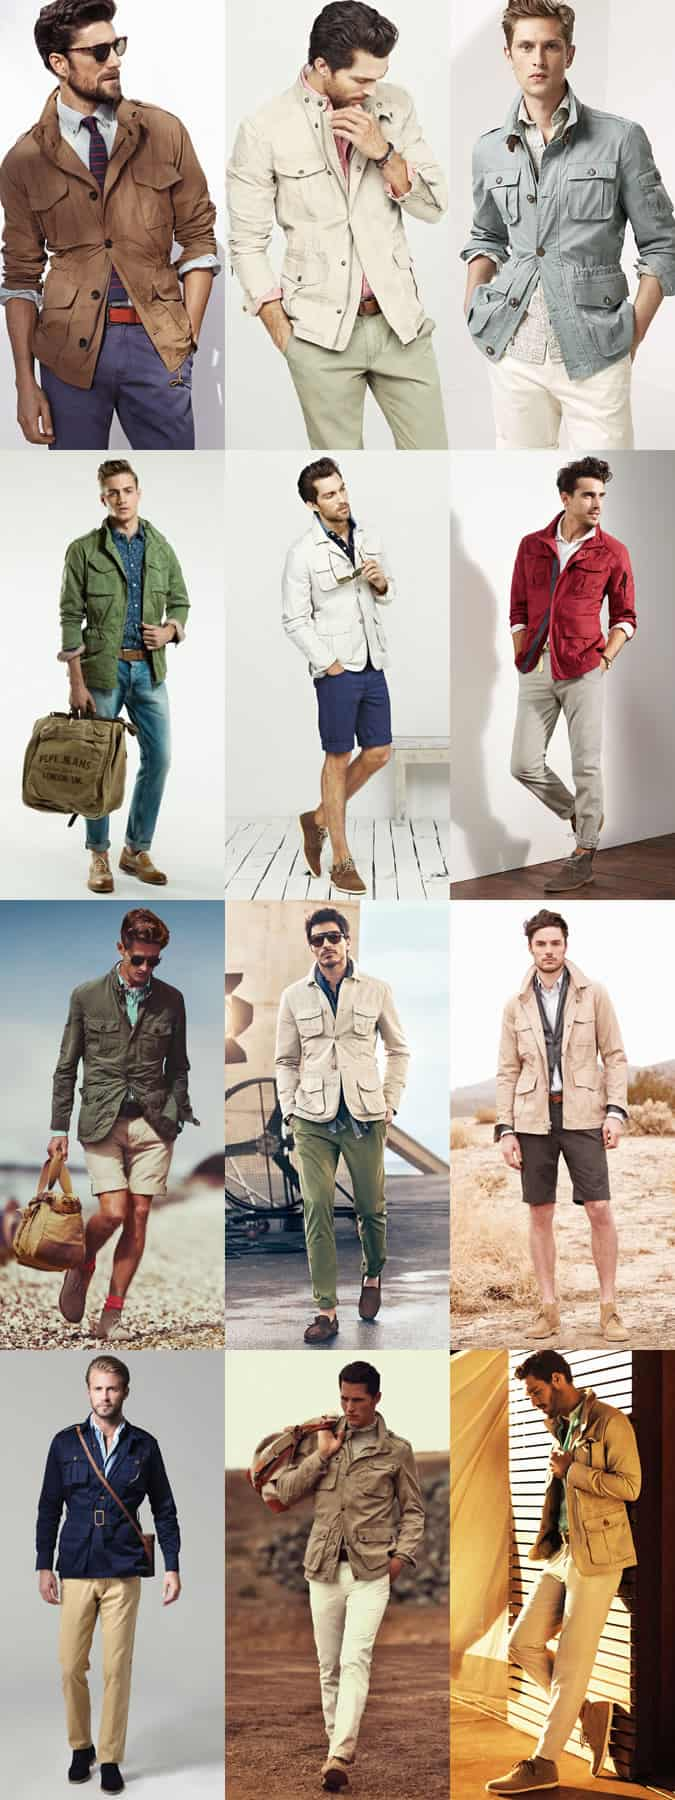 Men's Safari Jacket Outfit Inspiration Lookbook